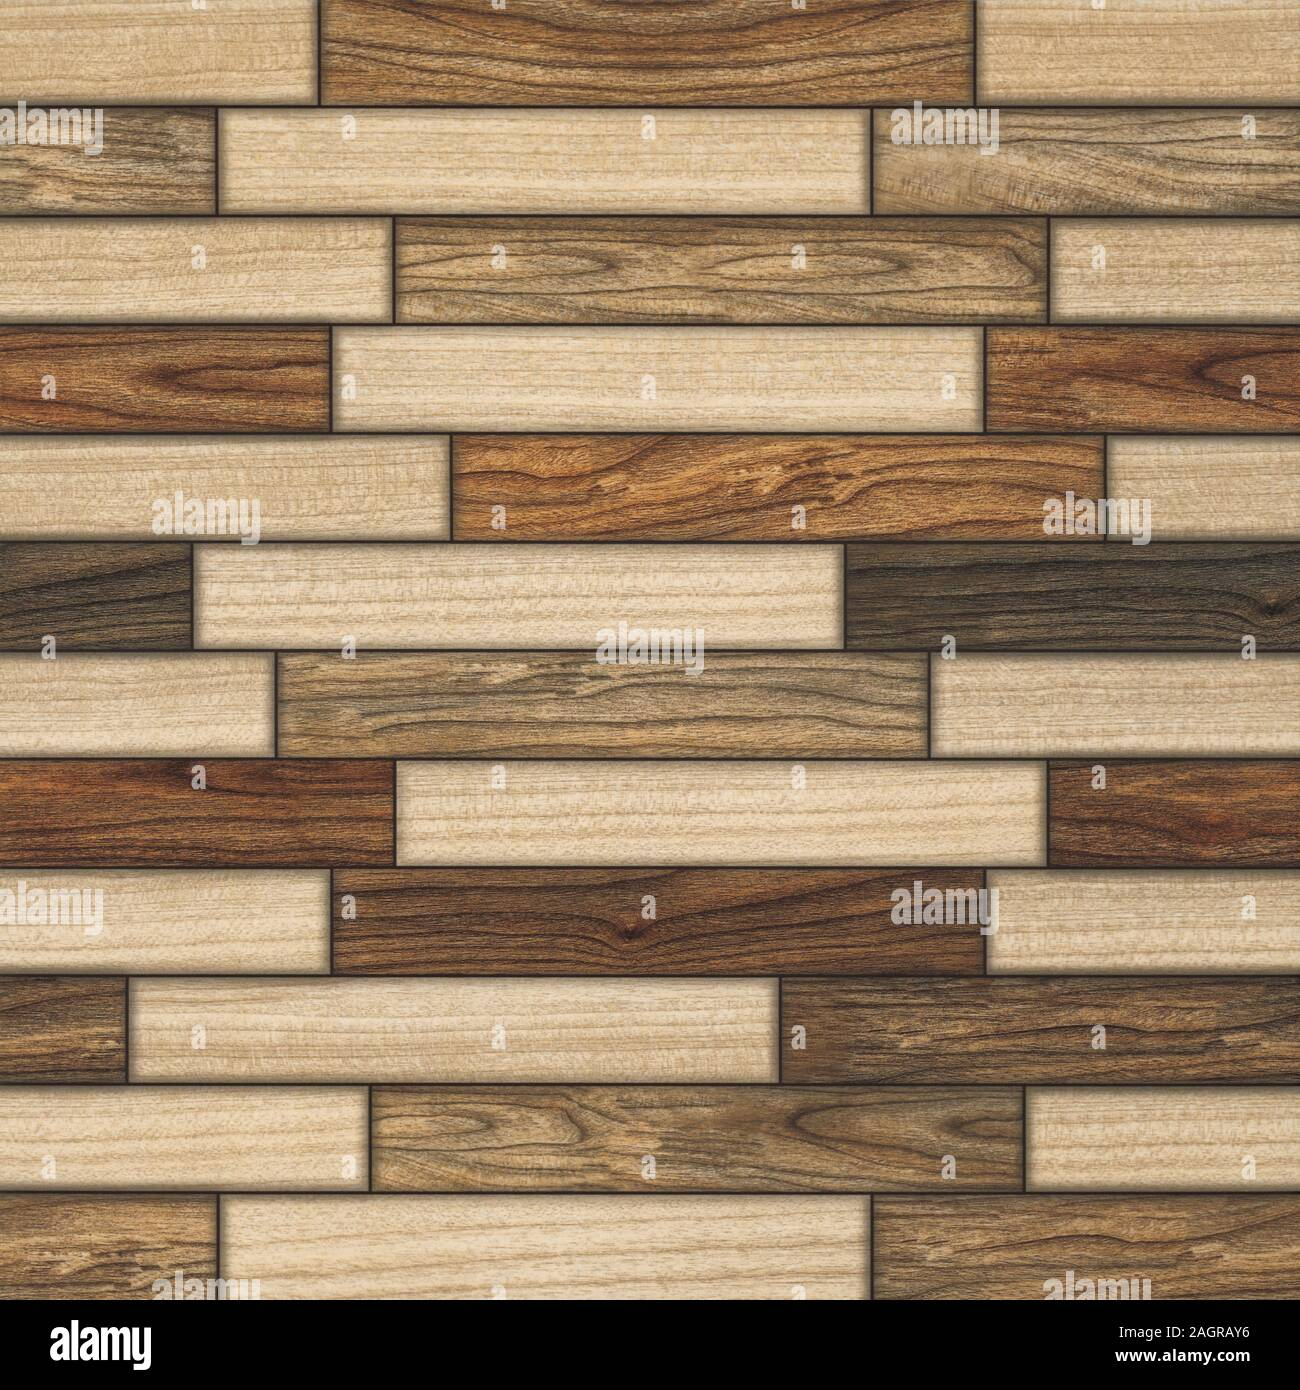 home decorative wooden wall tiles pattern background Stock Photo ...